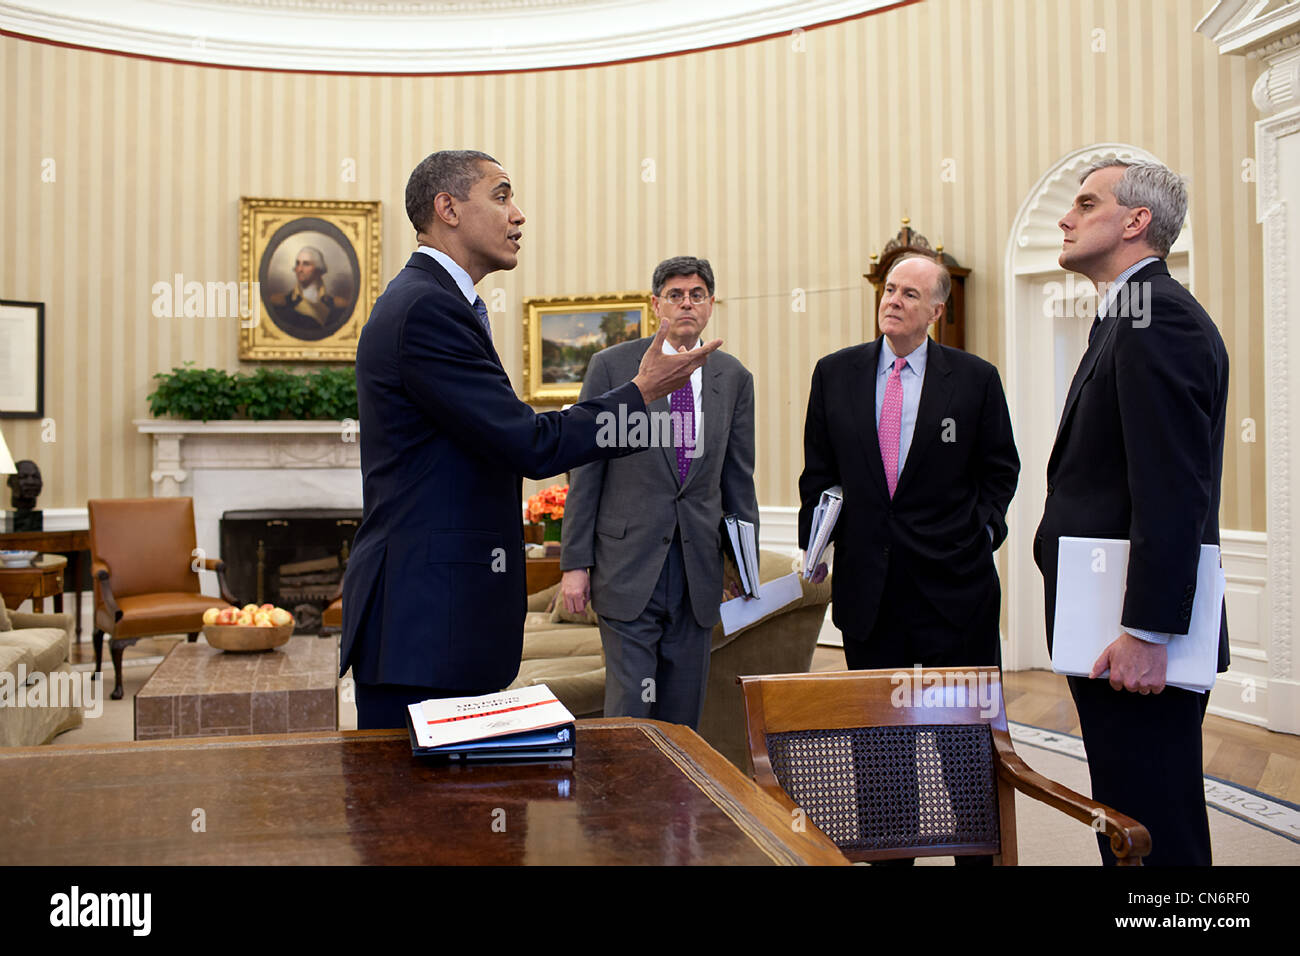 President Barack Obama talks with Chief of Staff Jack Lew, National Security Advisor Tom Donilon, and Deputy National - Stock Image